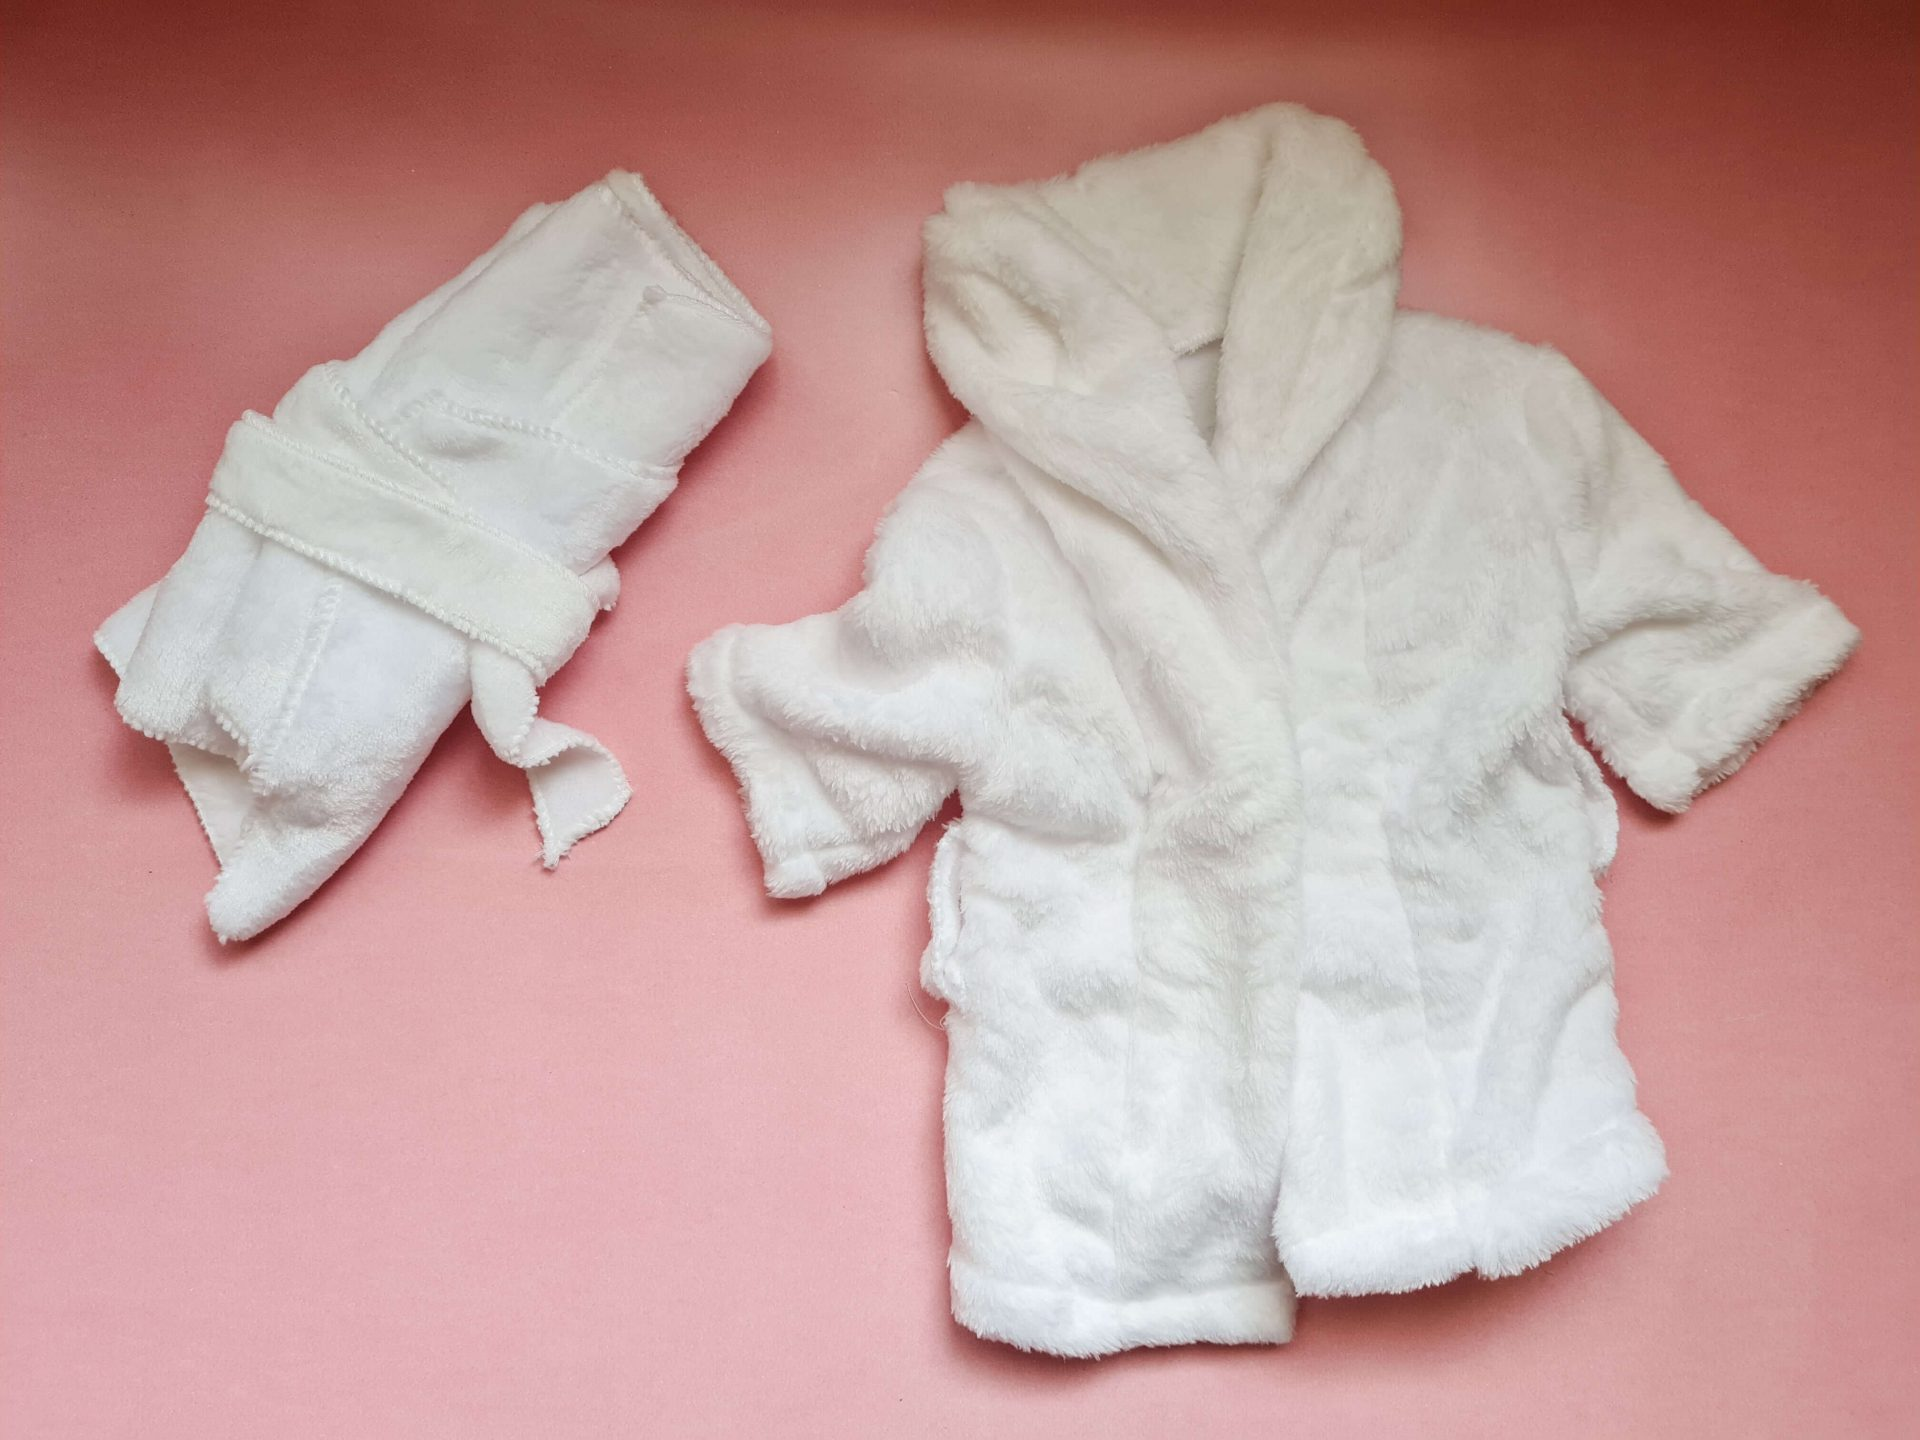 Baby Prop - Bath Robe - Rental Props in Pune